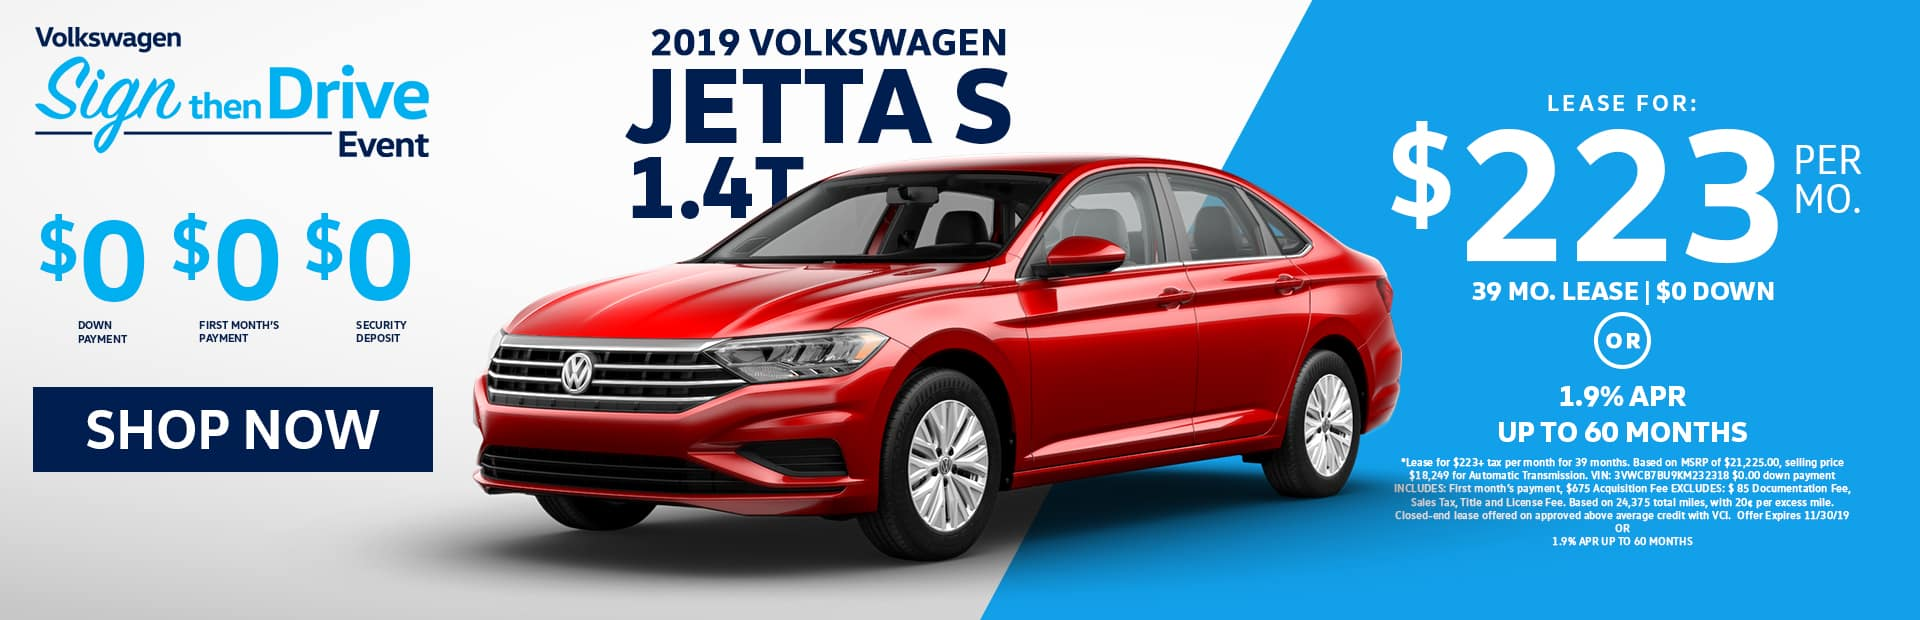 Jetta Lease Specials Los Angeles